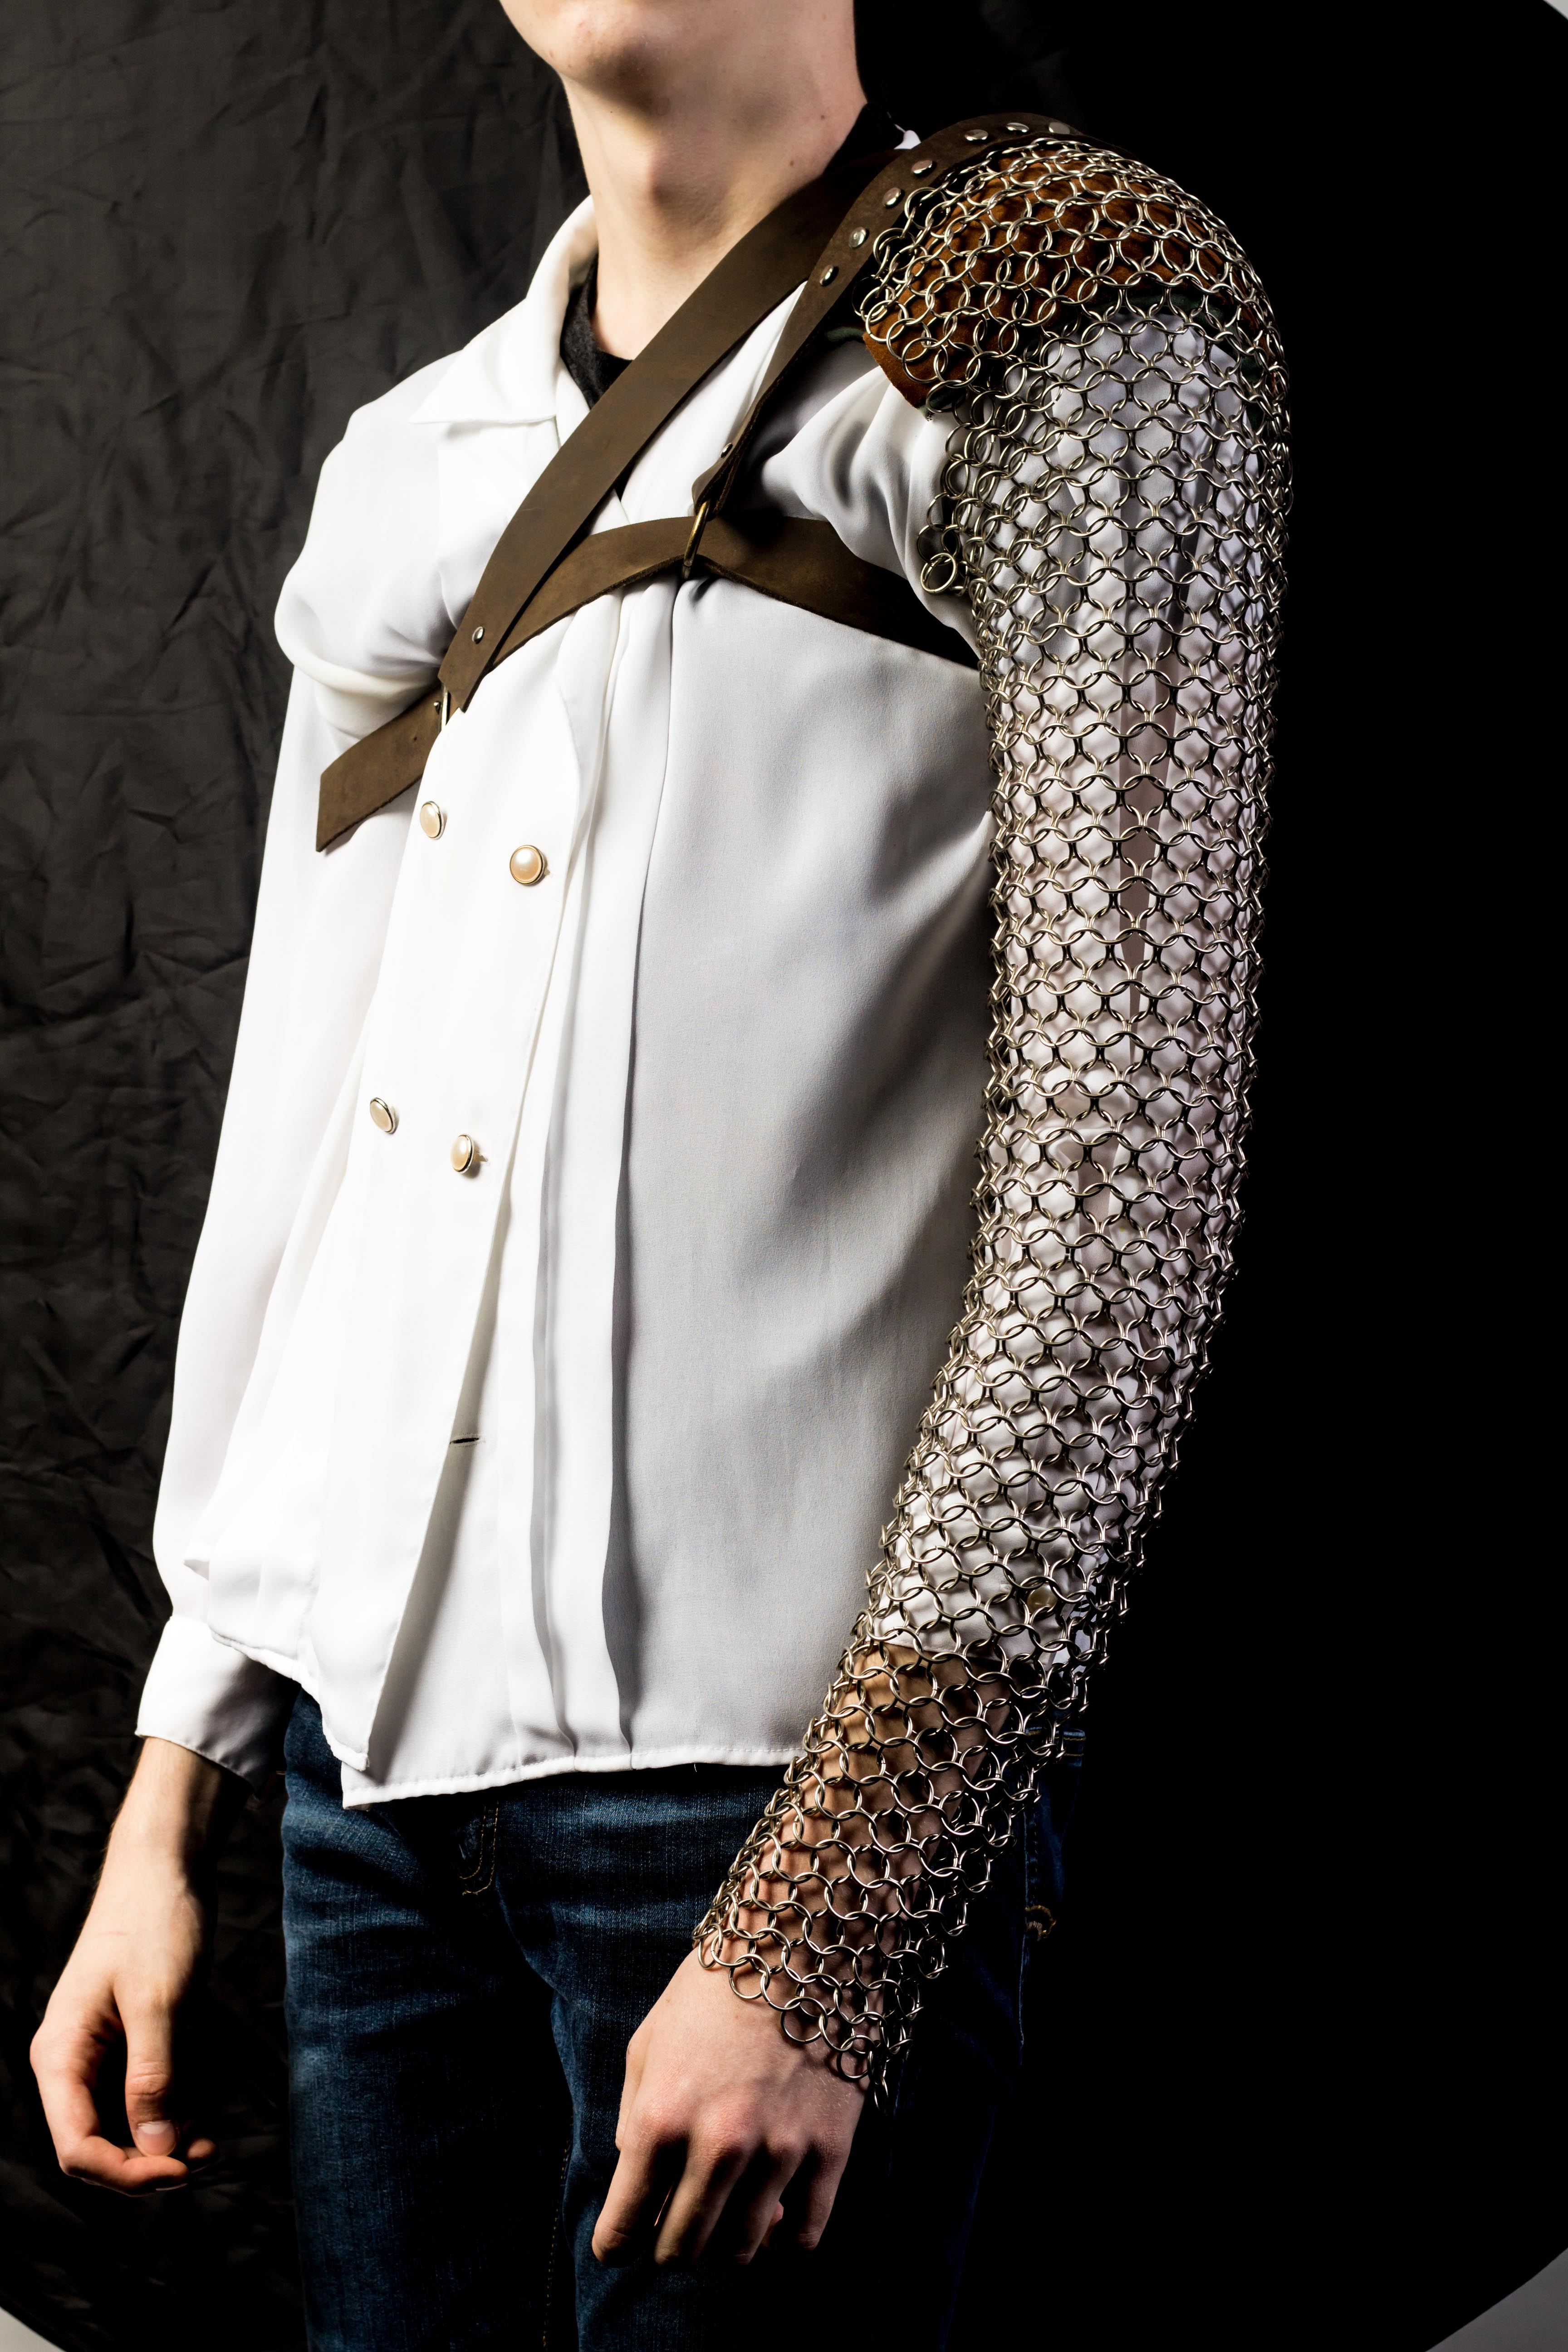 Image of student's chainmail and leather sleeve